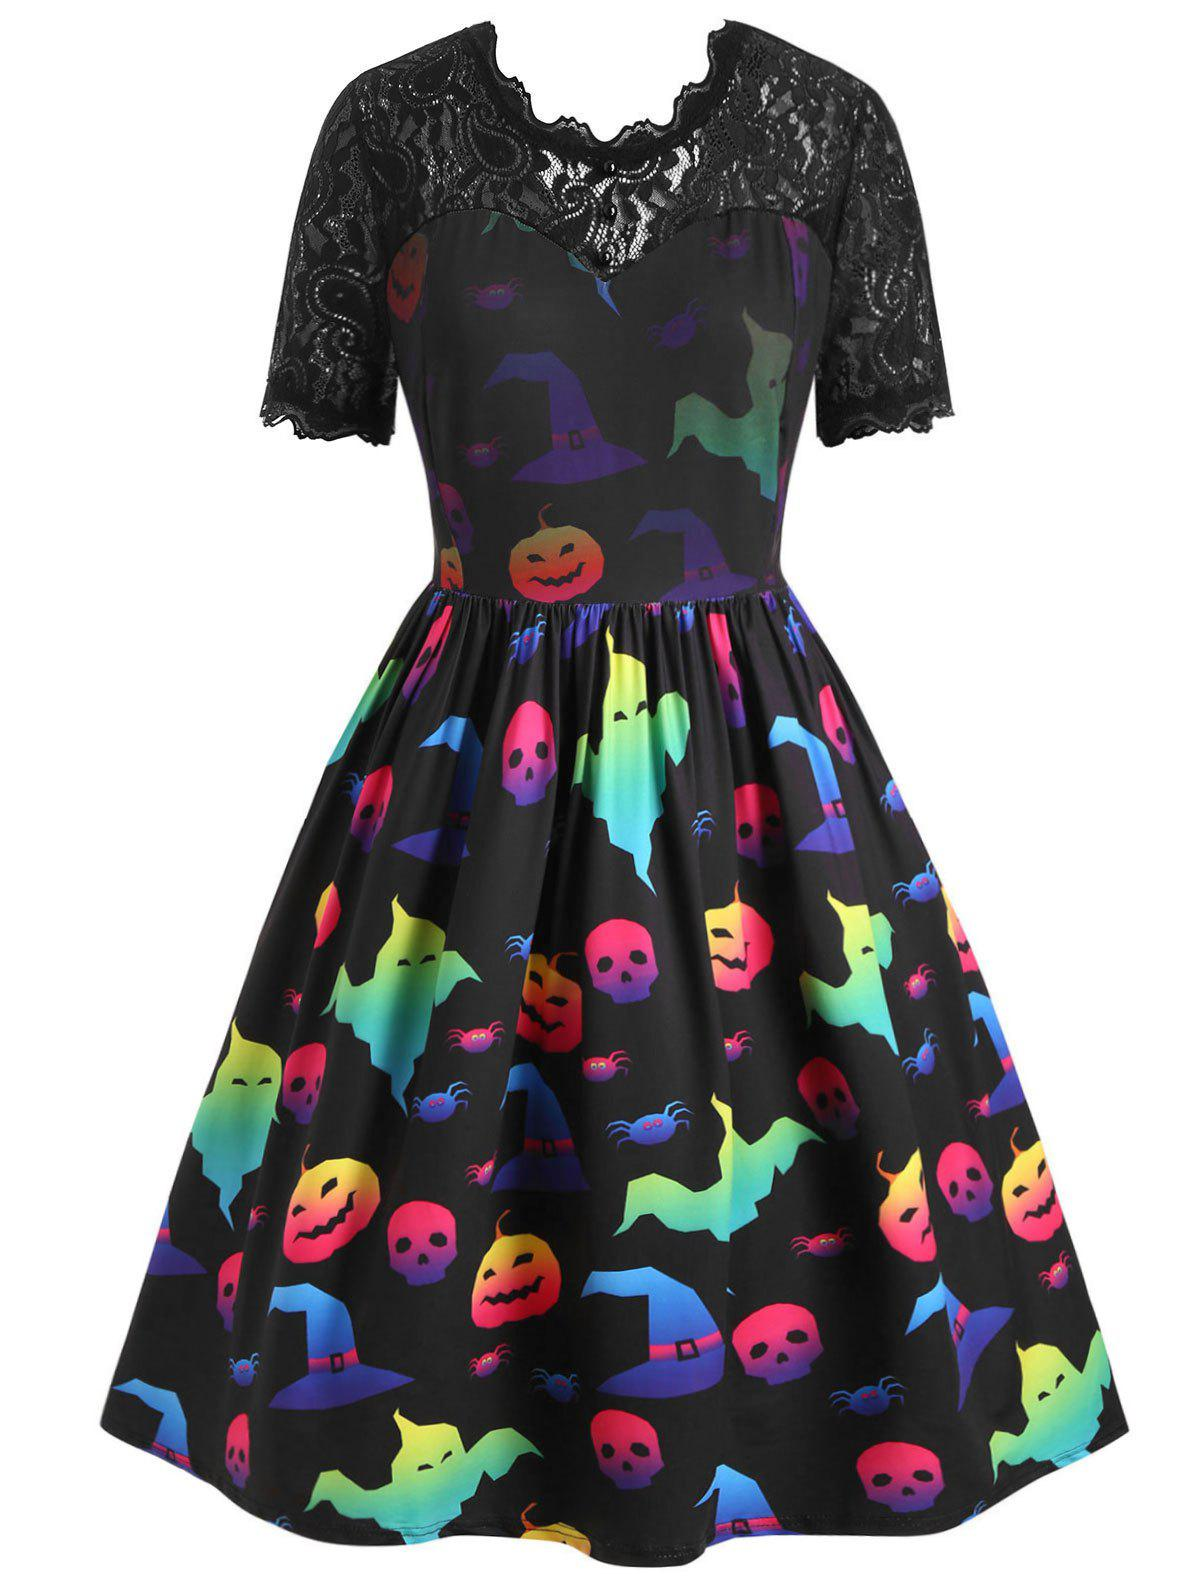 Plus Size Lace Panel Pumpkin Ghost Print Halloween Retro Dress